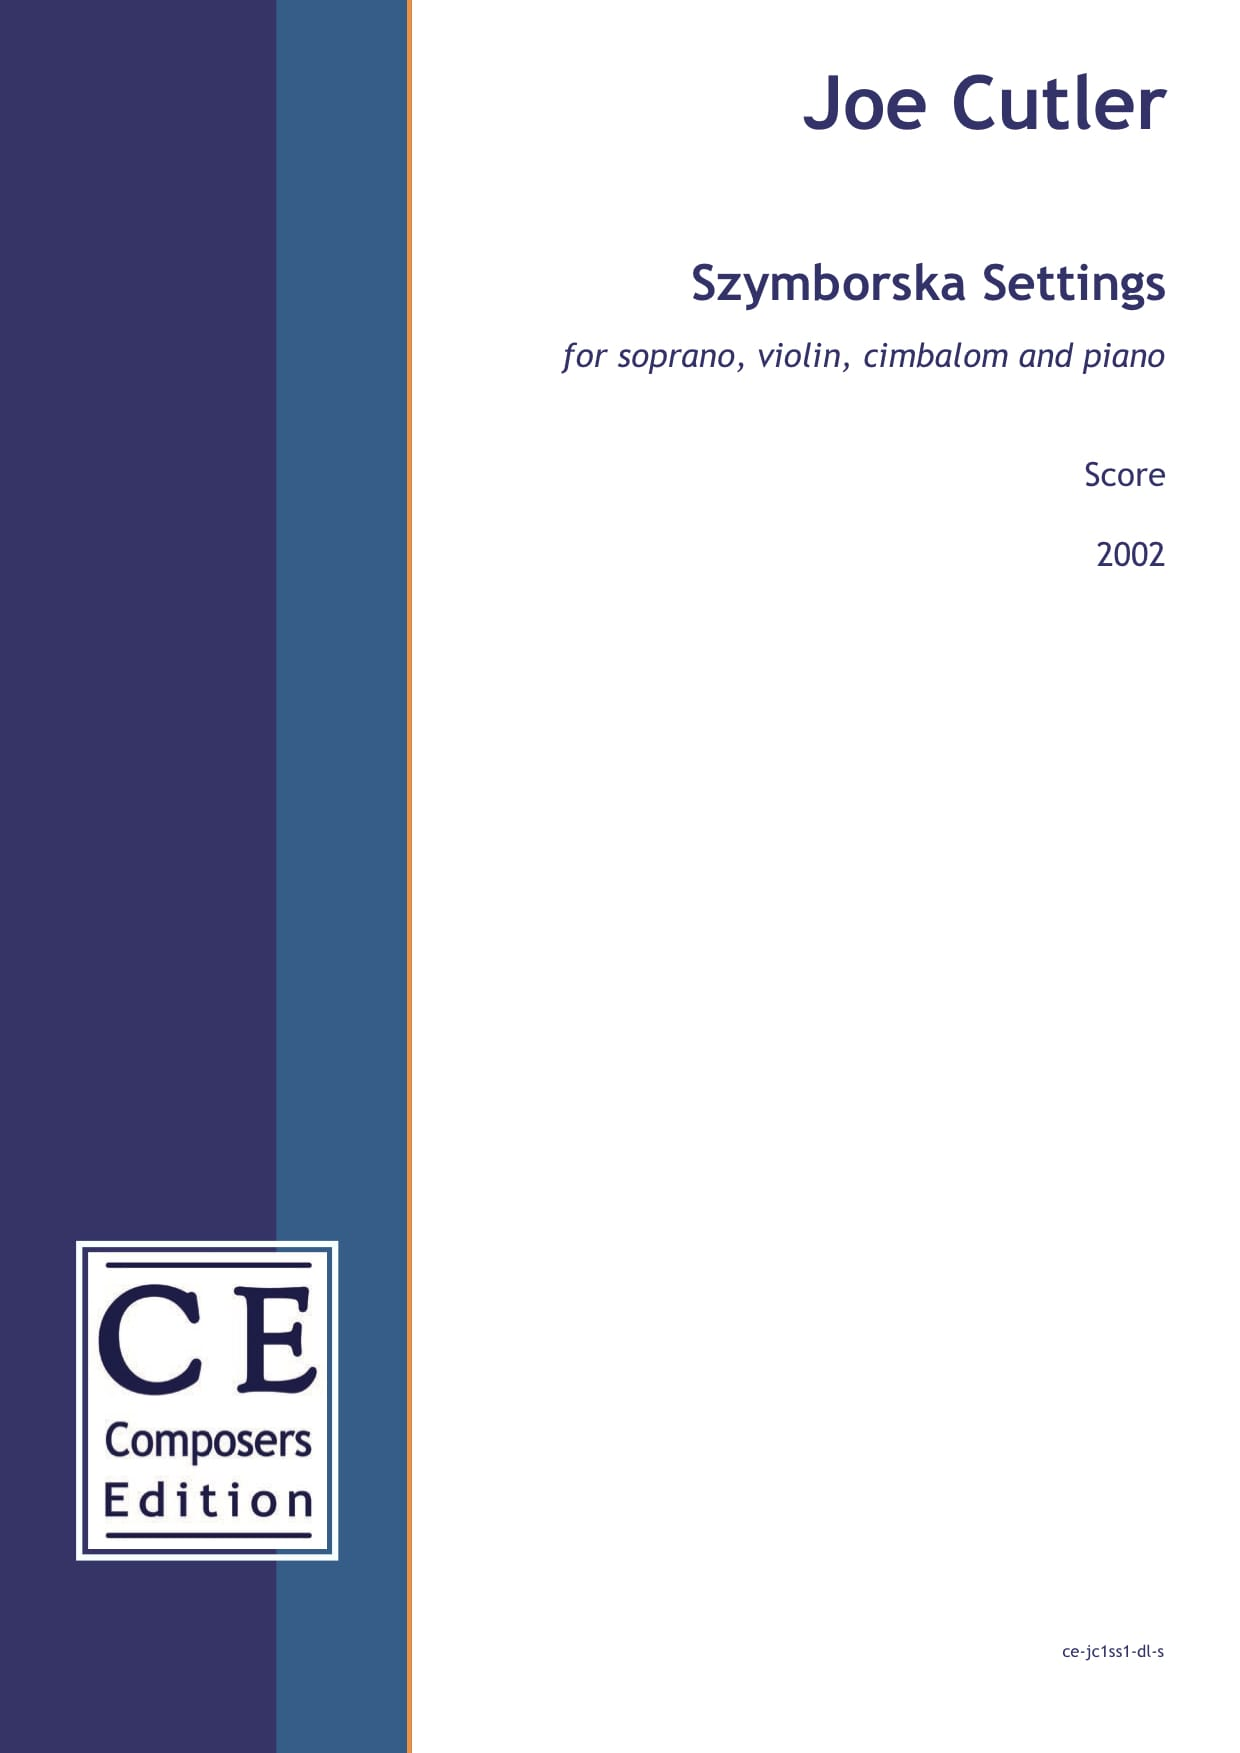 Joe Cutler: Szymborska Settings for soprano, violin, cimbalom and piano